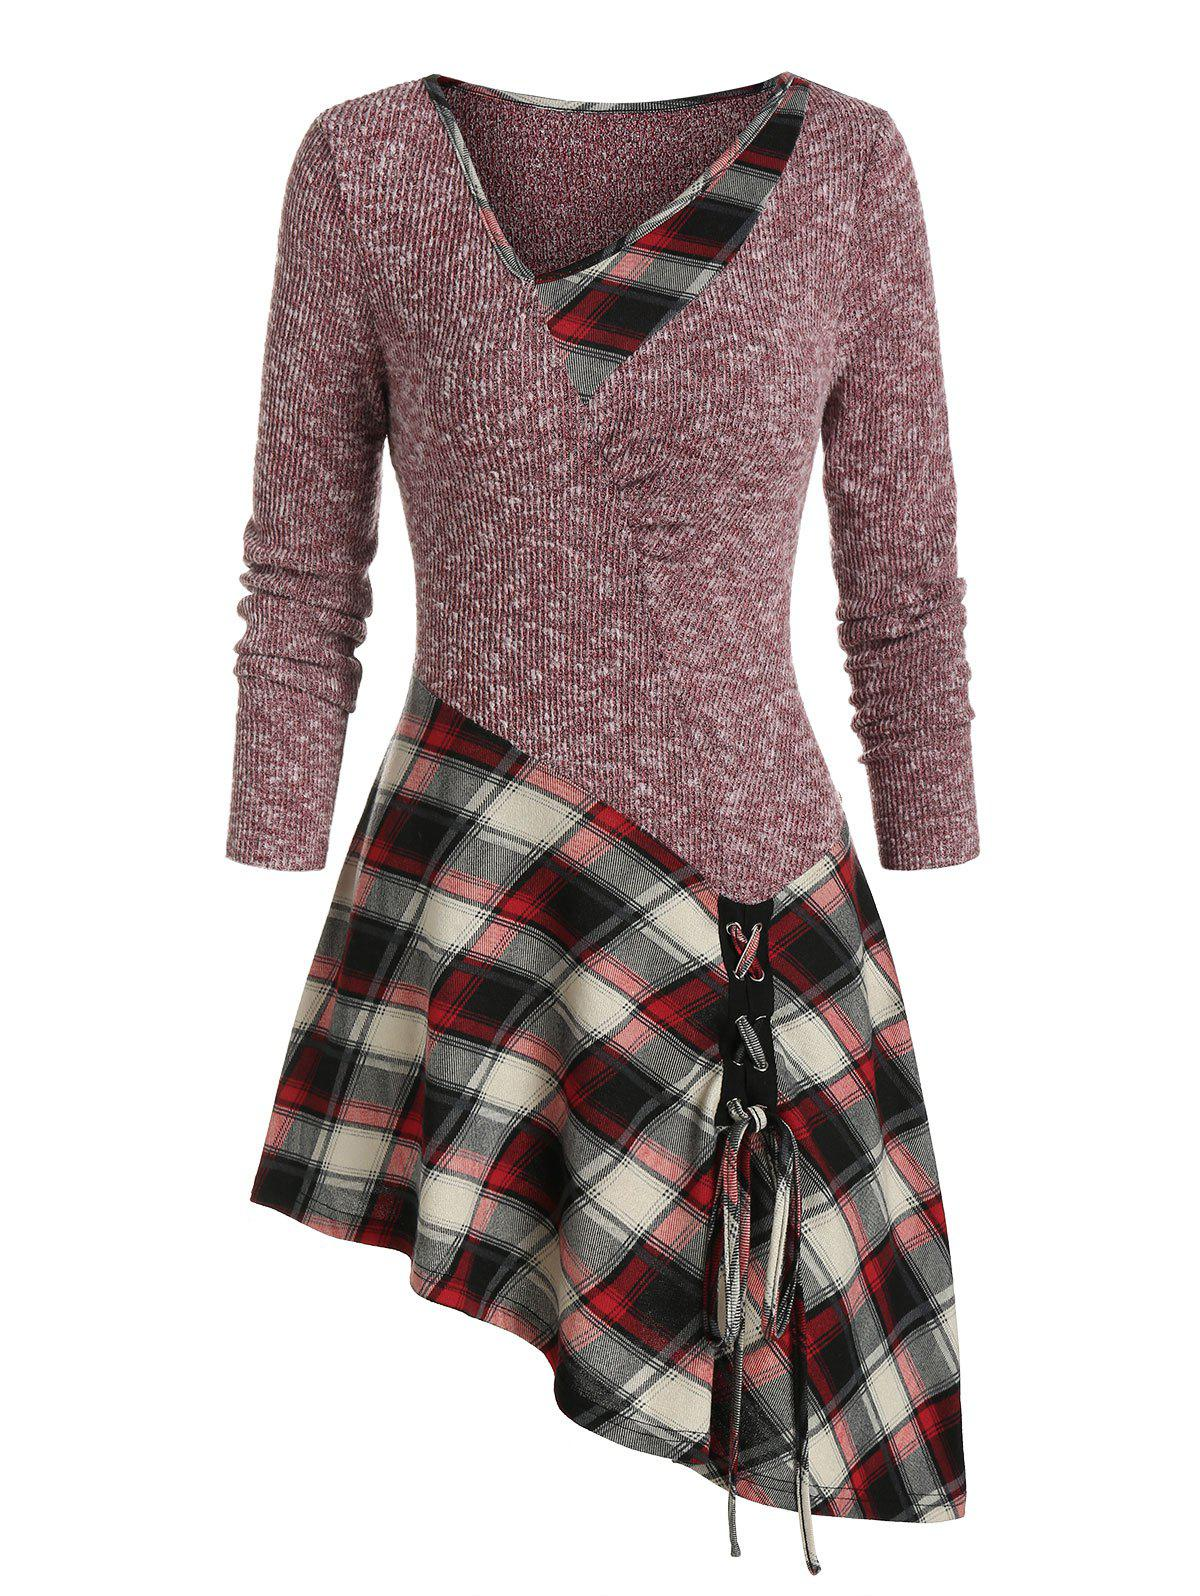 Plaid Print Lace-up Asymmetric Sweater - RED WINE L